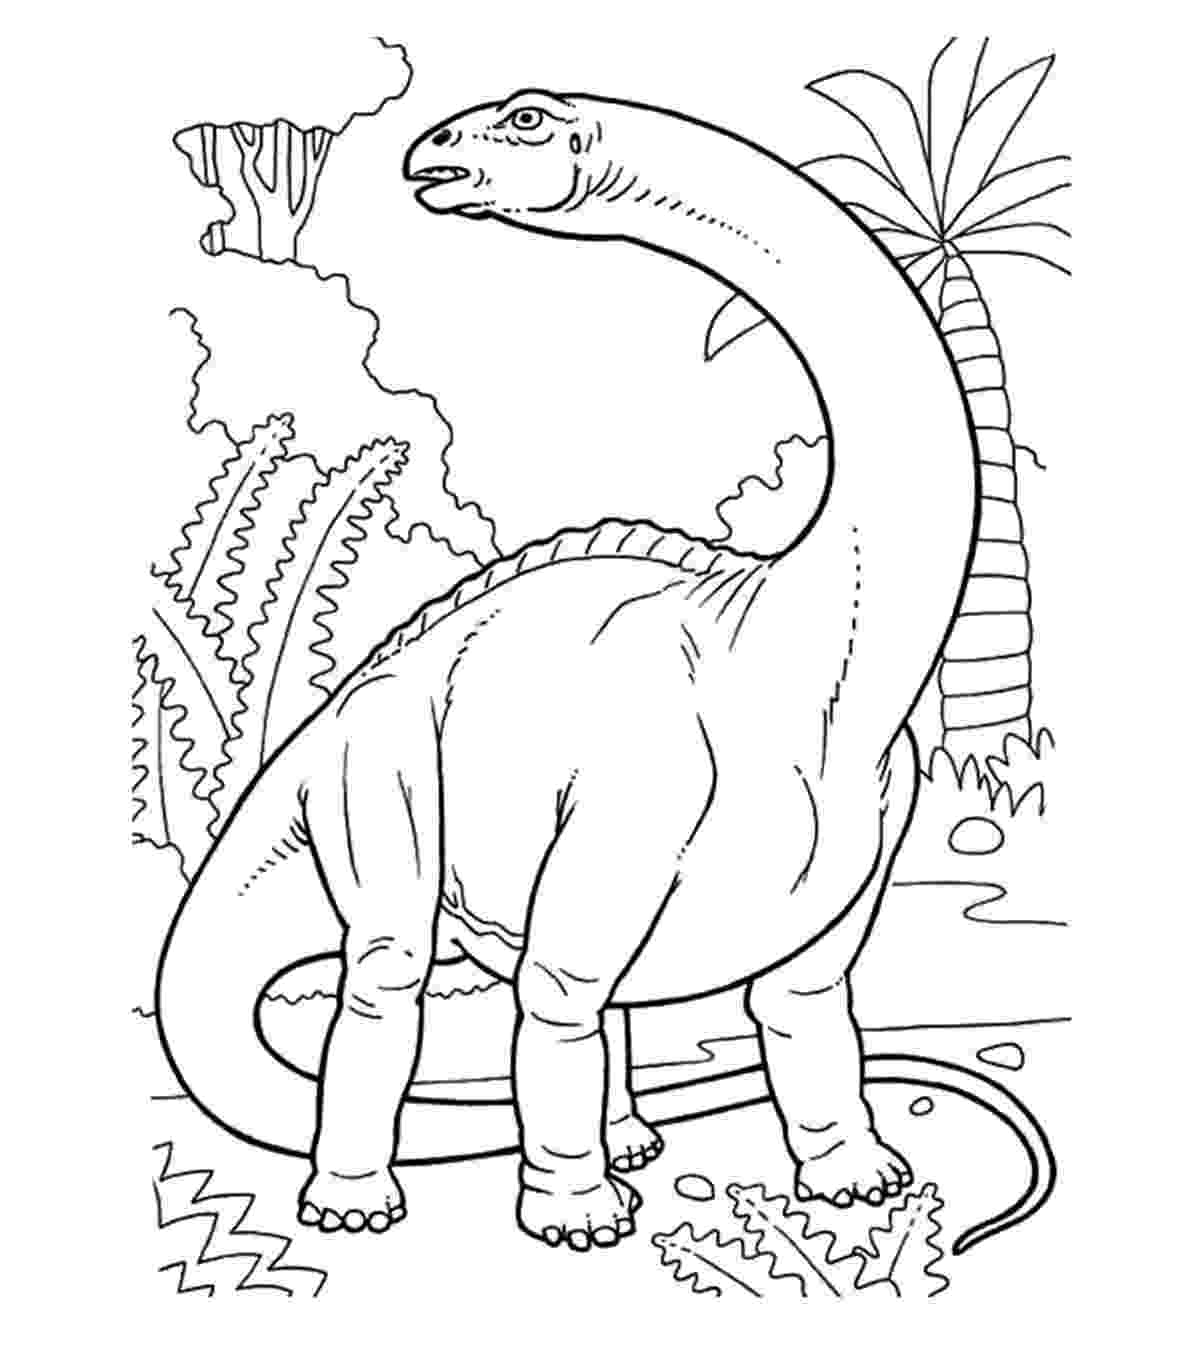 coloring pages of dinosaurs for preschoolers fun dinosaur coloring pages imagiplay coloring for preschoolers of dinosaurs pages